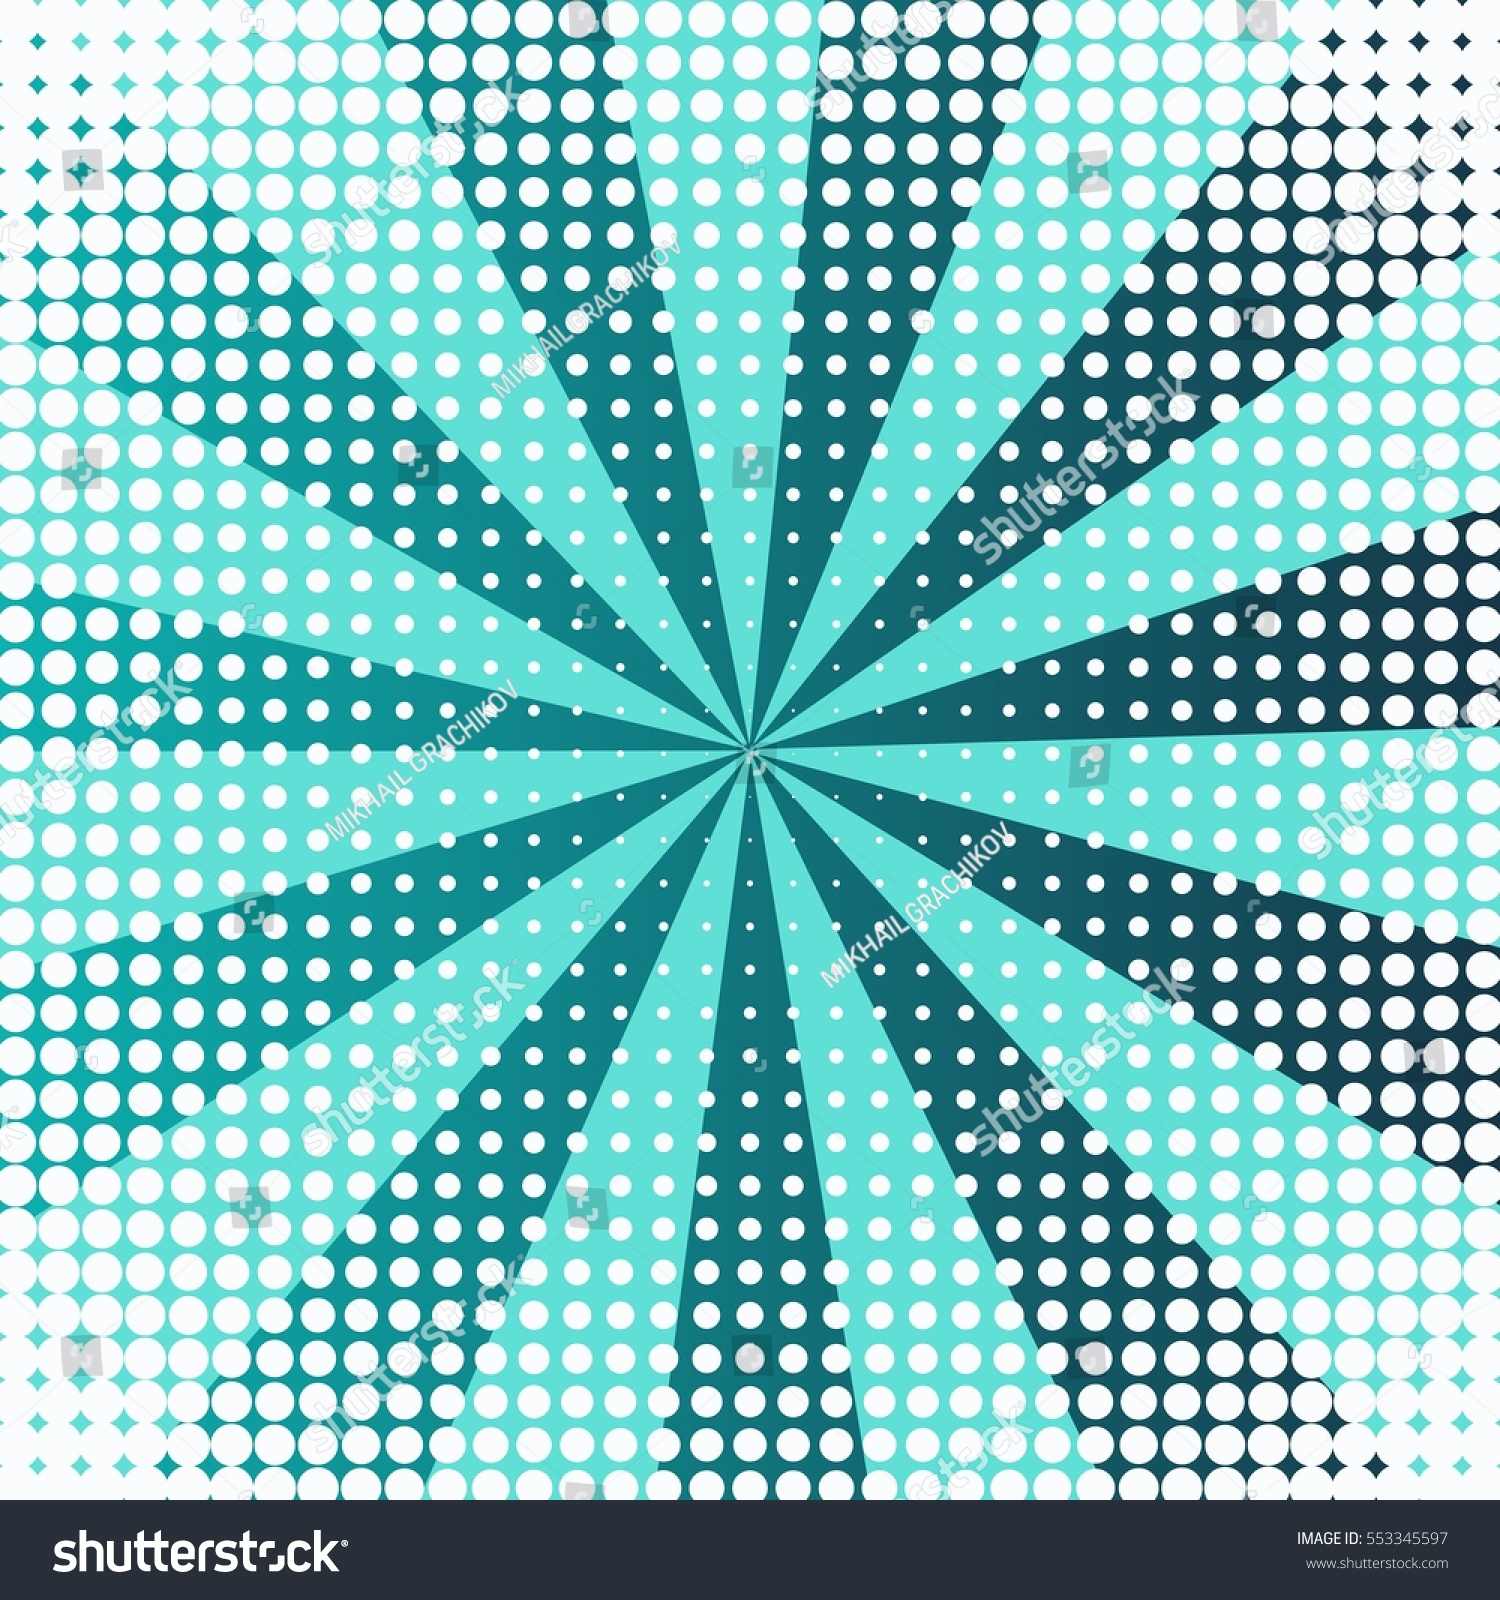 Abstract Creative Concept Vector ic Pop Stock Vector Royalty